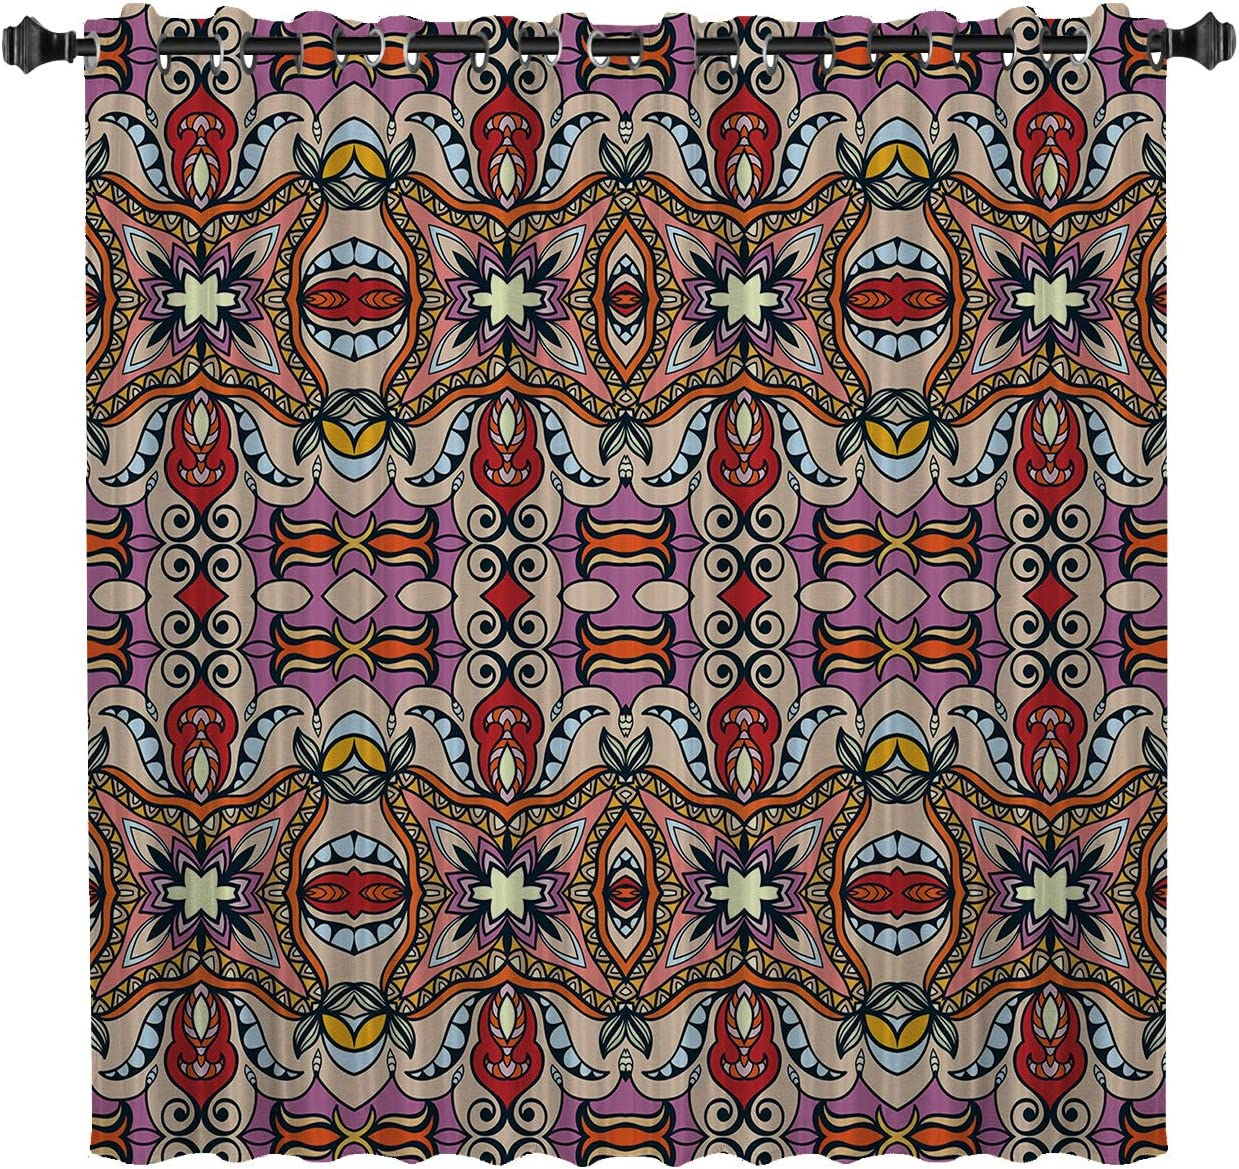 BedSweet Blackout Max 63% OFF Room All items in the store Darkening Mysterious Pa 52x90in Curtains